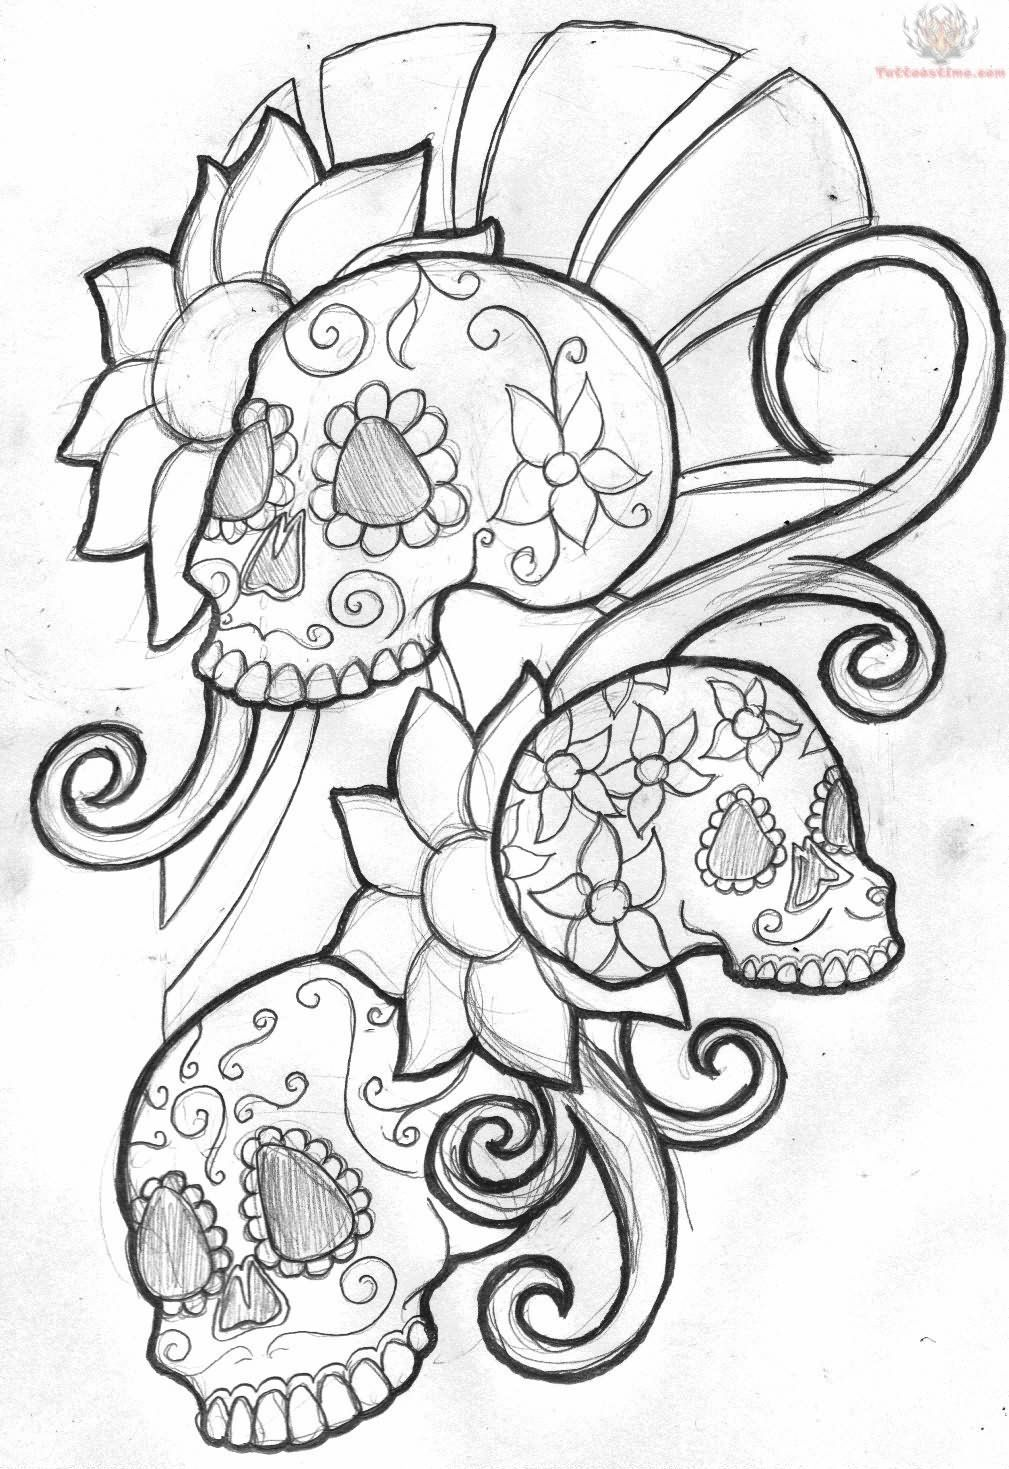 Skull Line Drawing Tattoo : Cool zombie skull tattoo drawings tagged